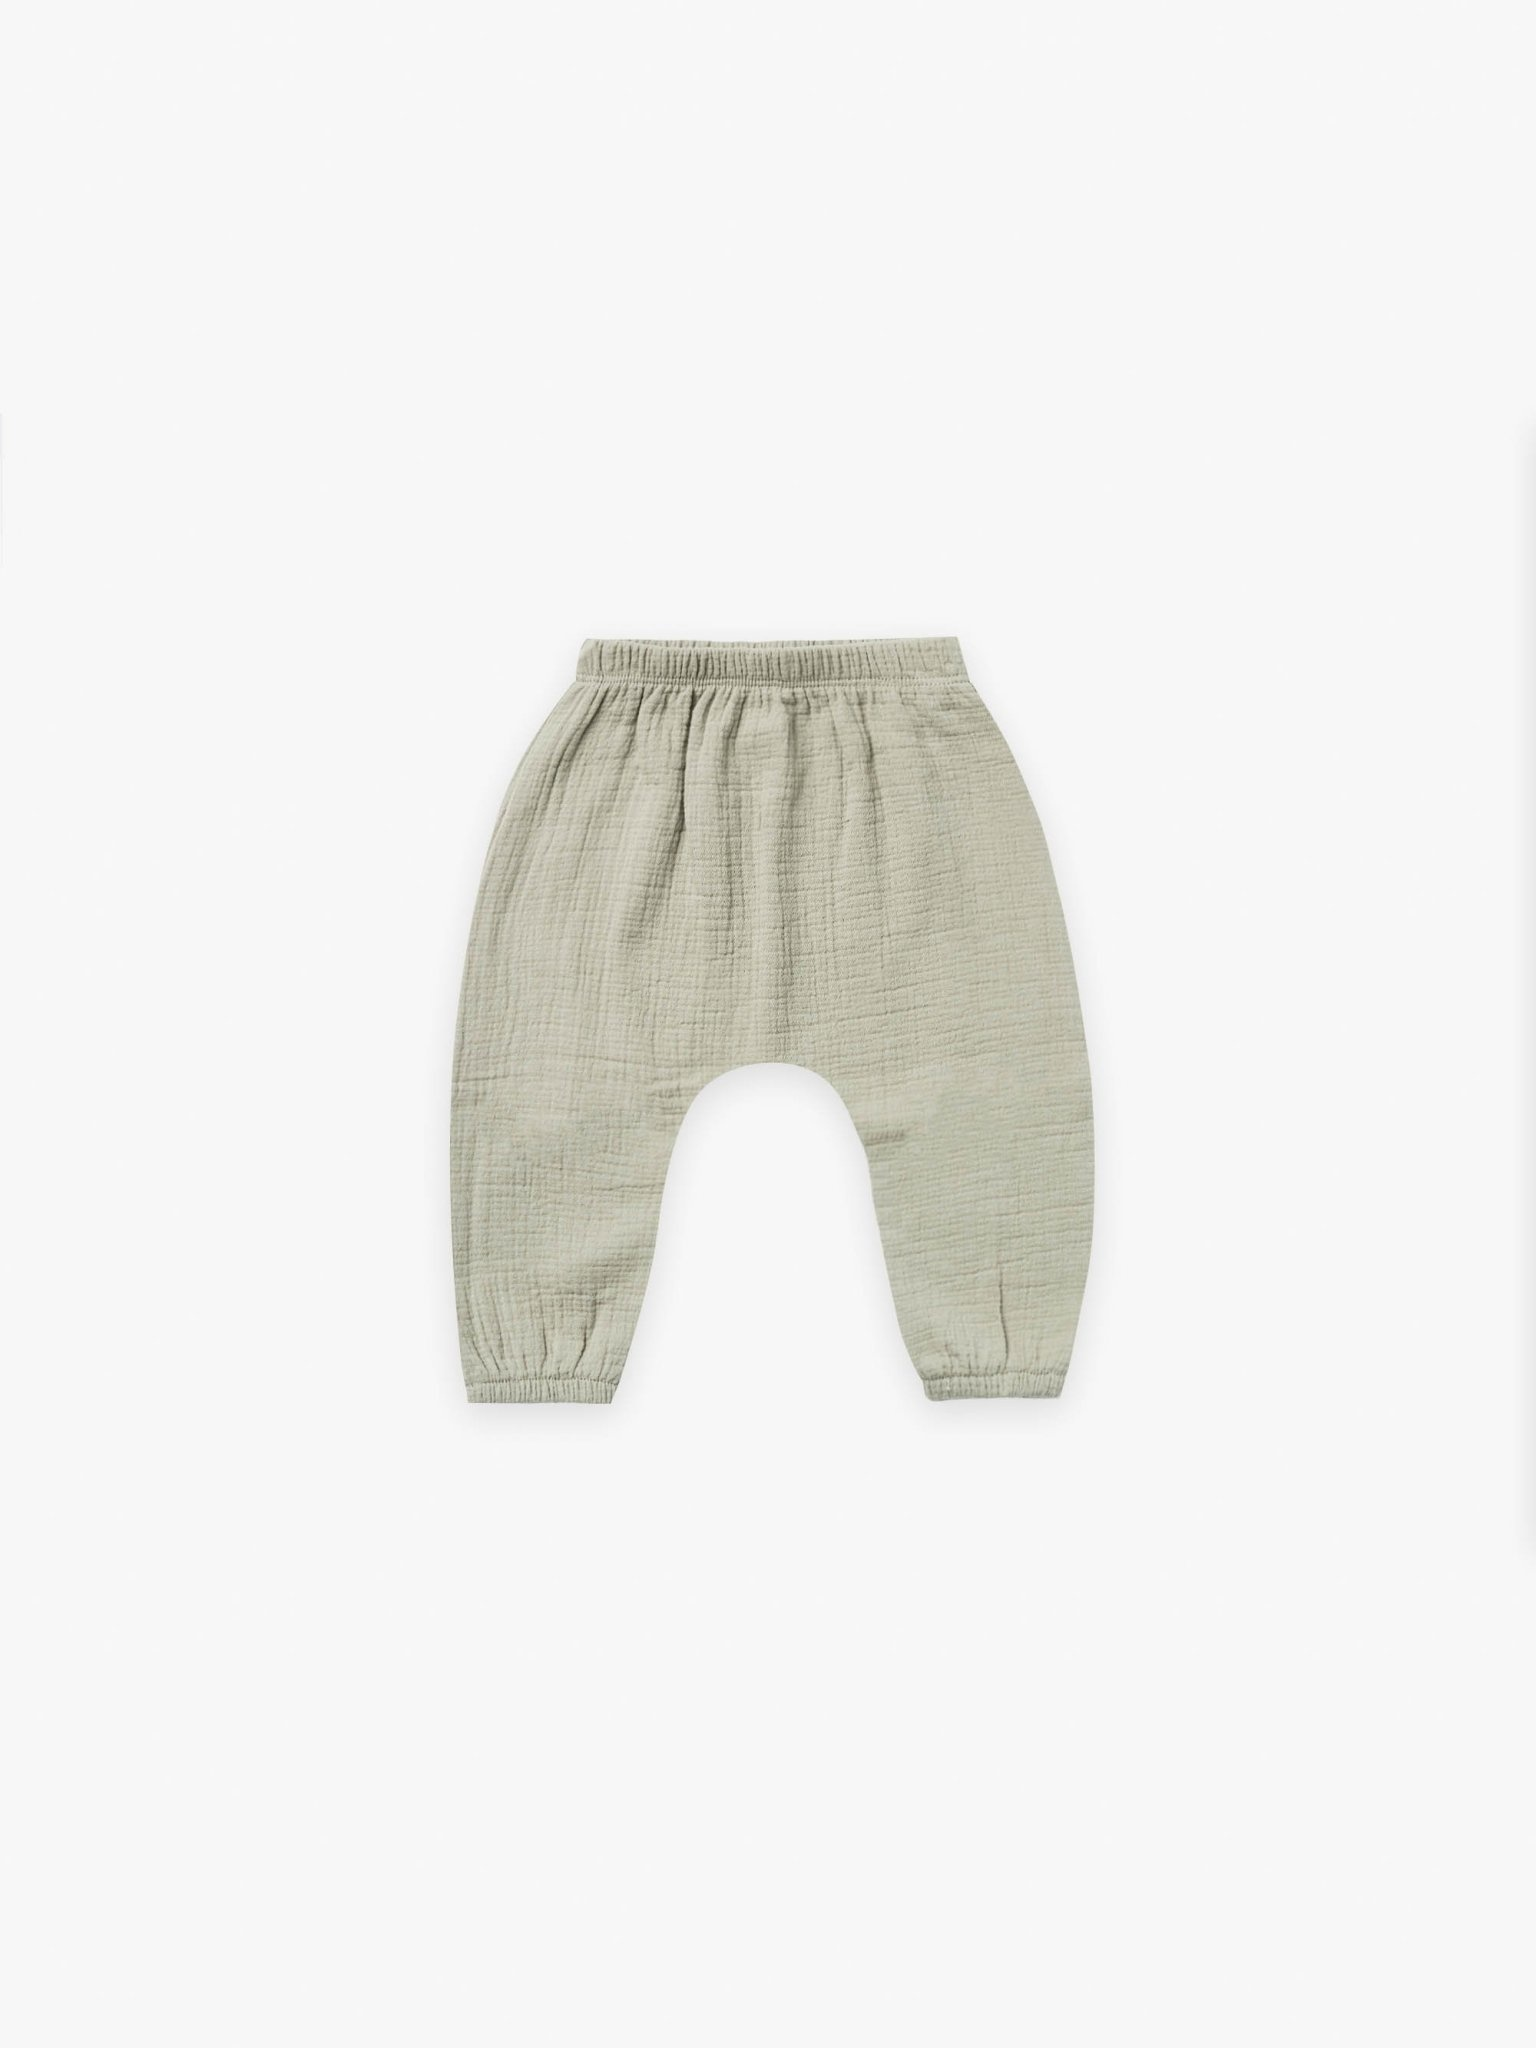 Quincy Mae Quincy Mae | Woven Harem Pant Sage